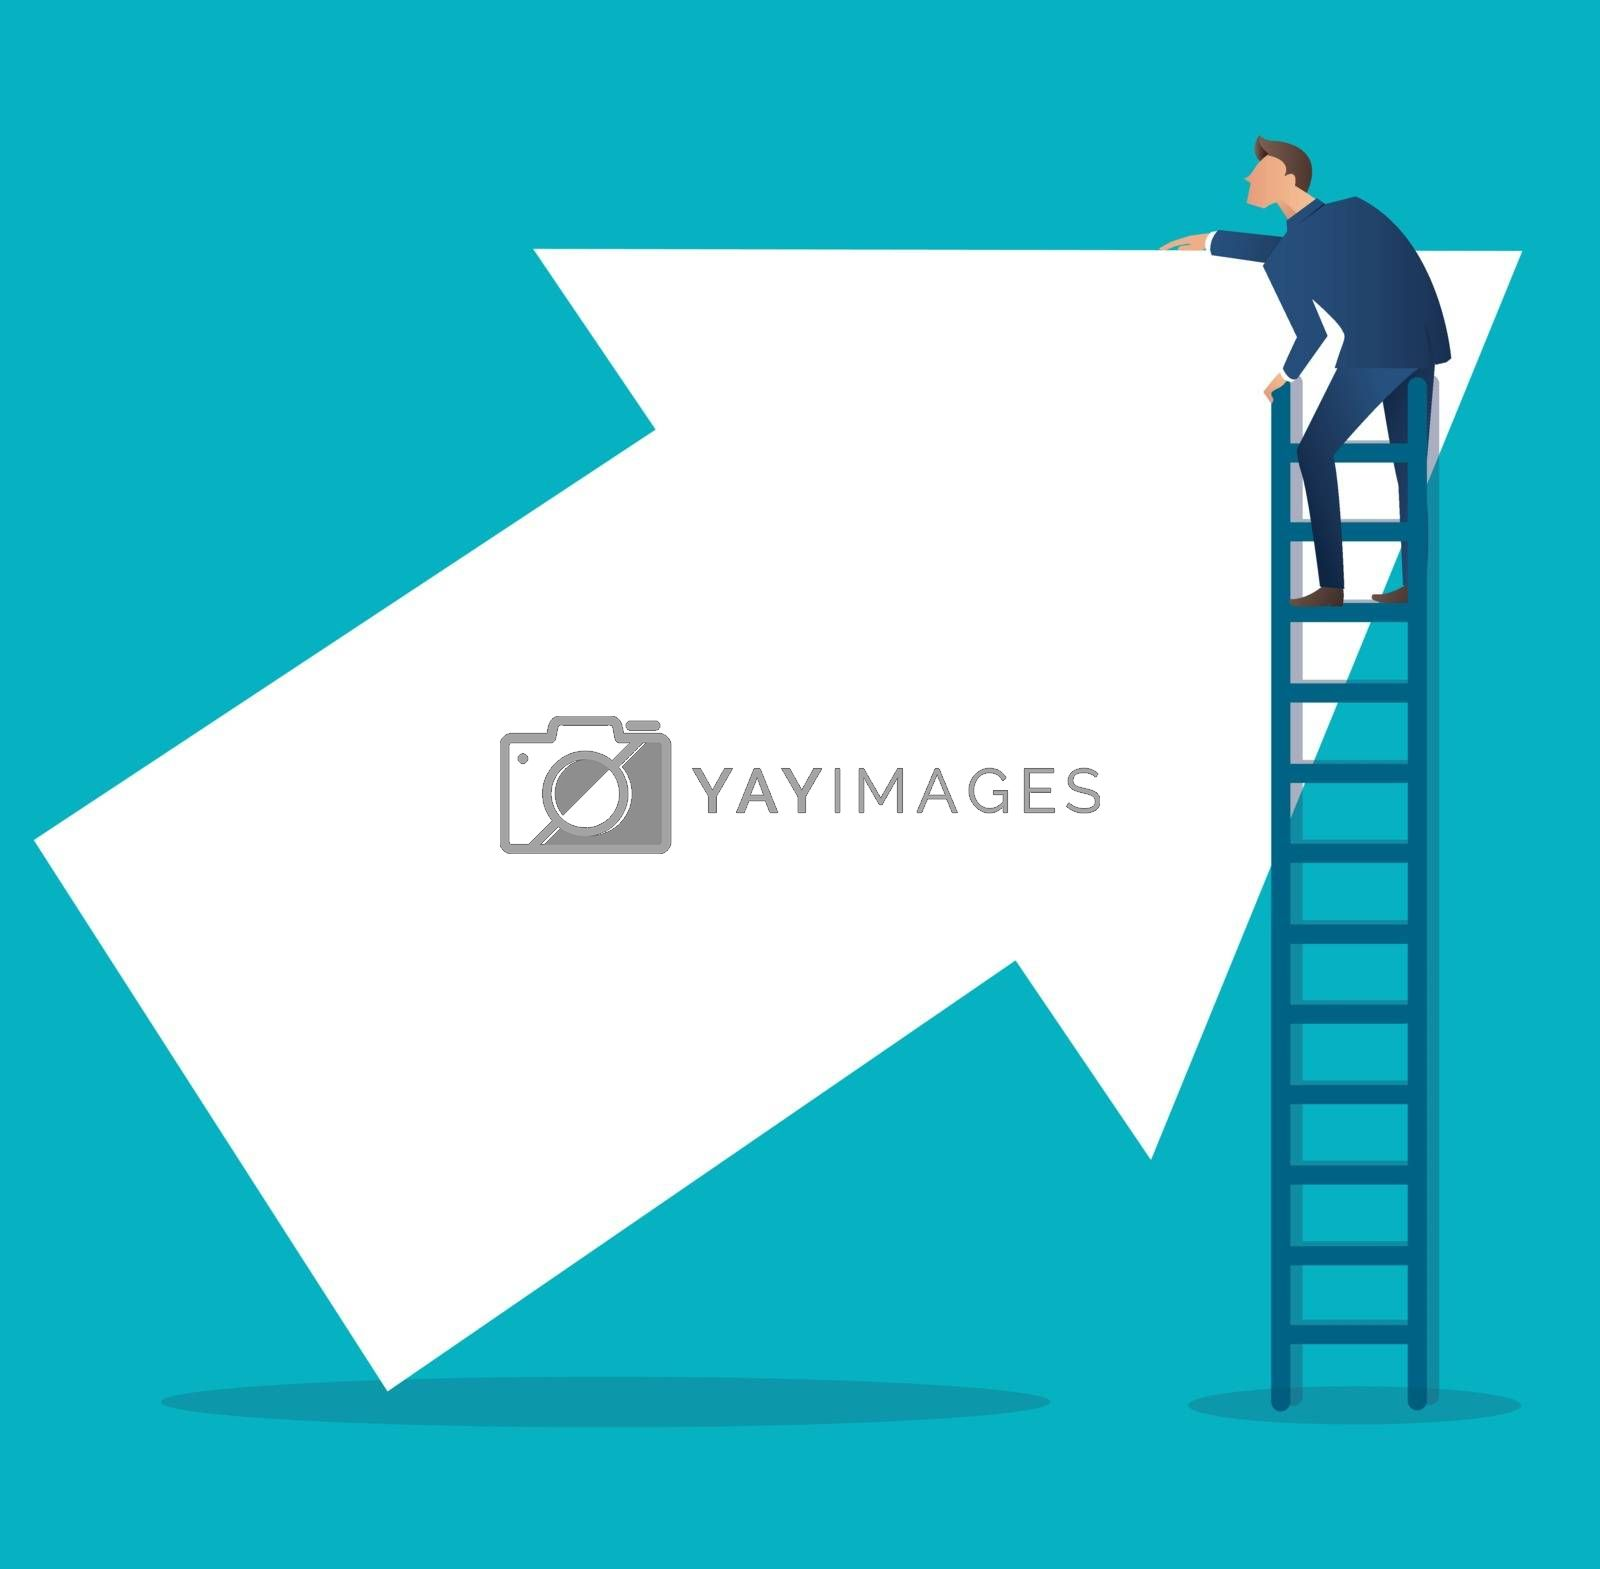 Business concept vector illustration of a man on ladder  with up arrow